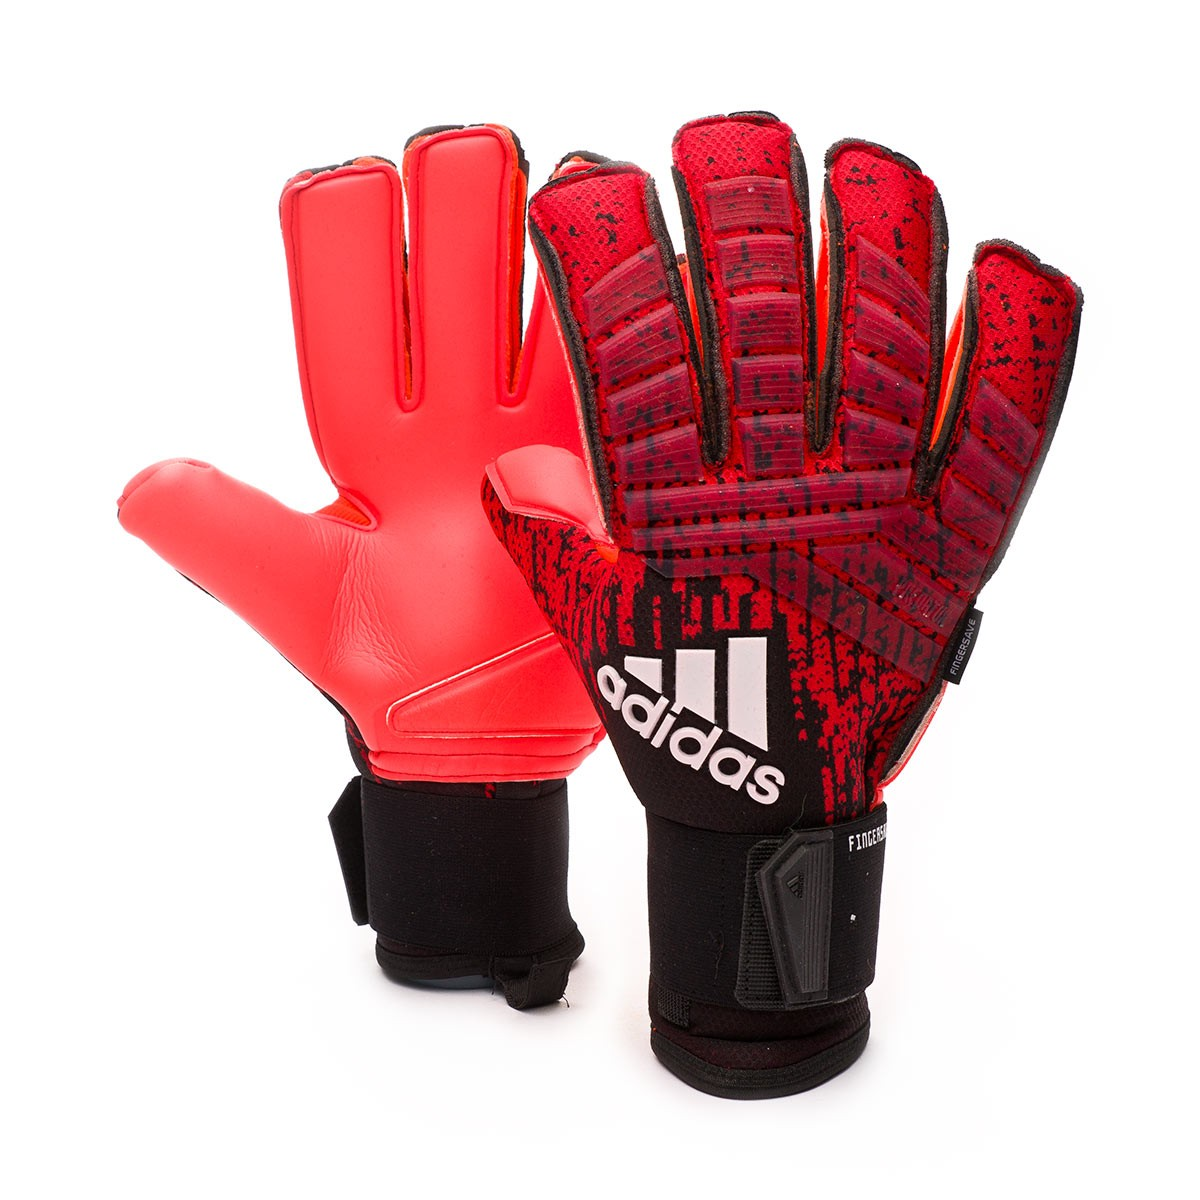 Inscribirse Marca comercial crisantemo  Glove adidas Predator Pro Fingersave Active red-Black-Solar red - Football  store Fútbol Emotion